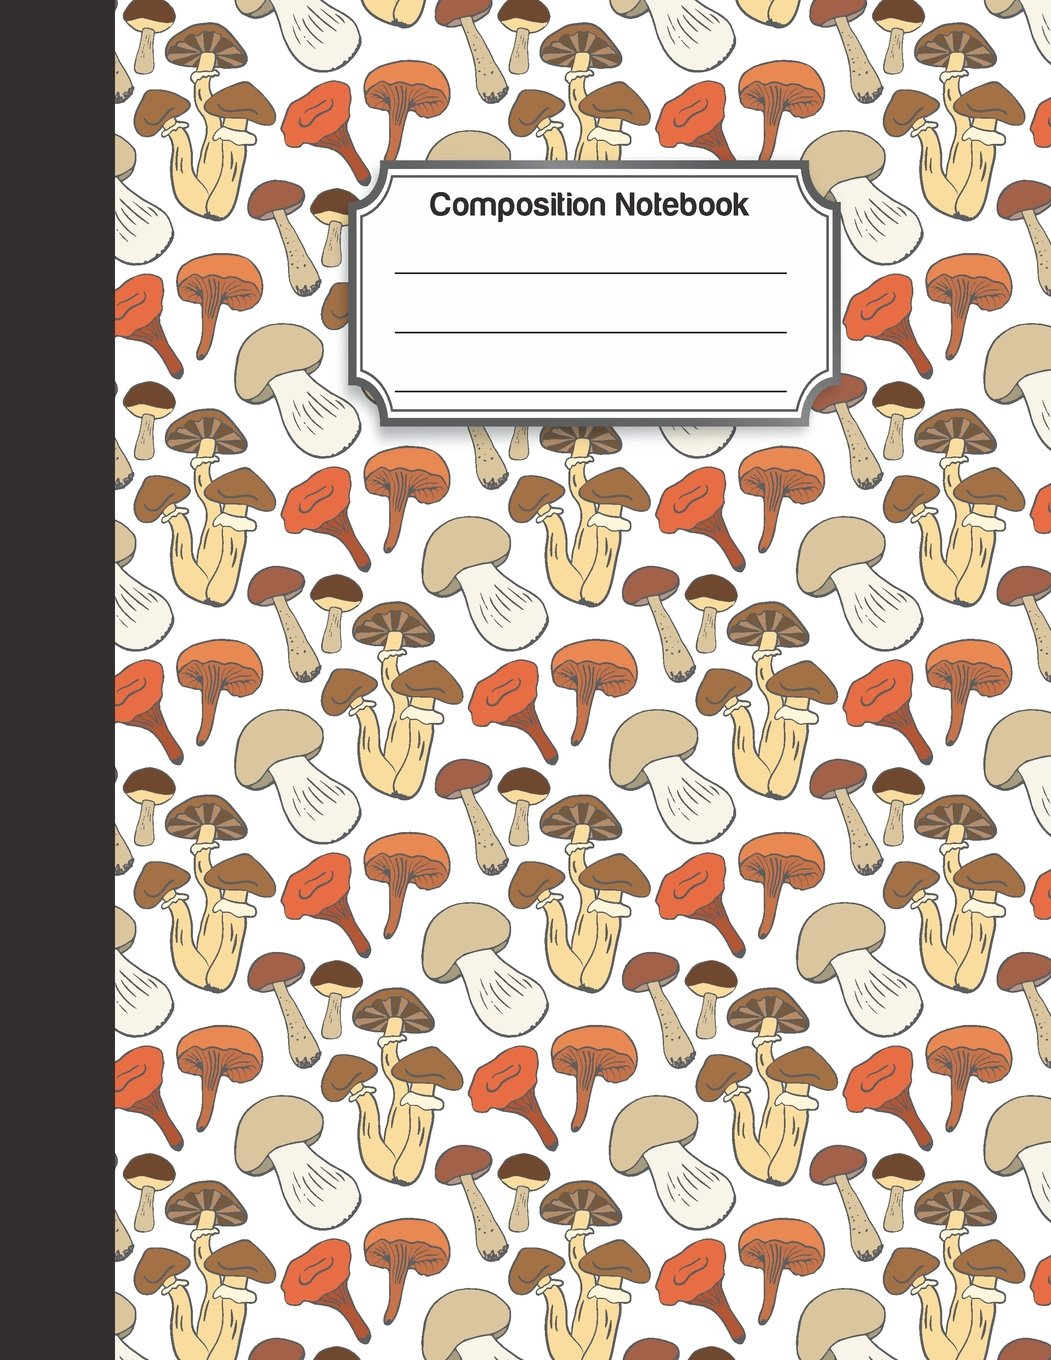 Download Composition Notebook: Brown red mushroom doodle color pattern : College Ruled School Notebooks, Composition Notebook, Subject Daily Journal Notebook : 120 Lined Pages (Large, 8.5 x 11 in.) ebook